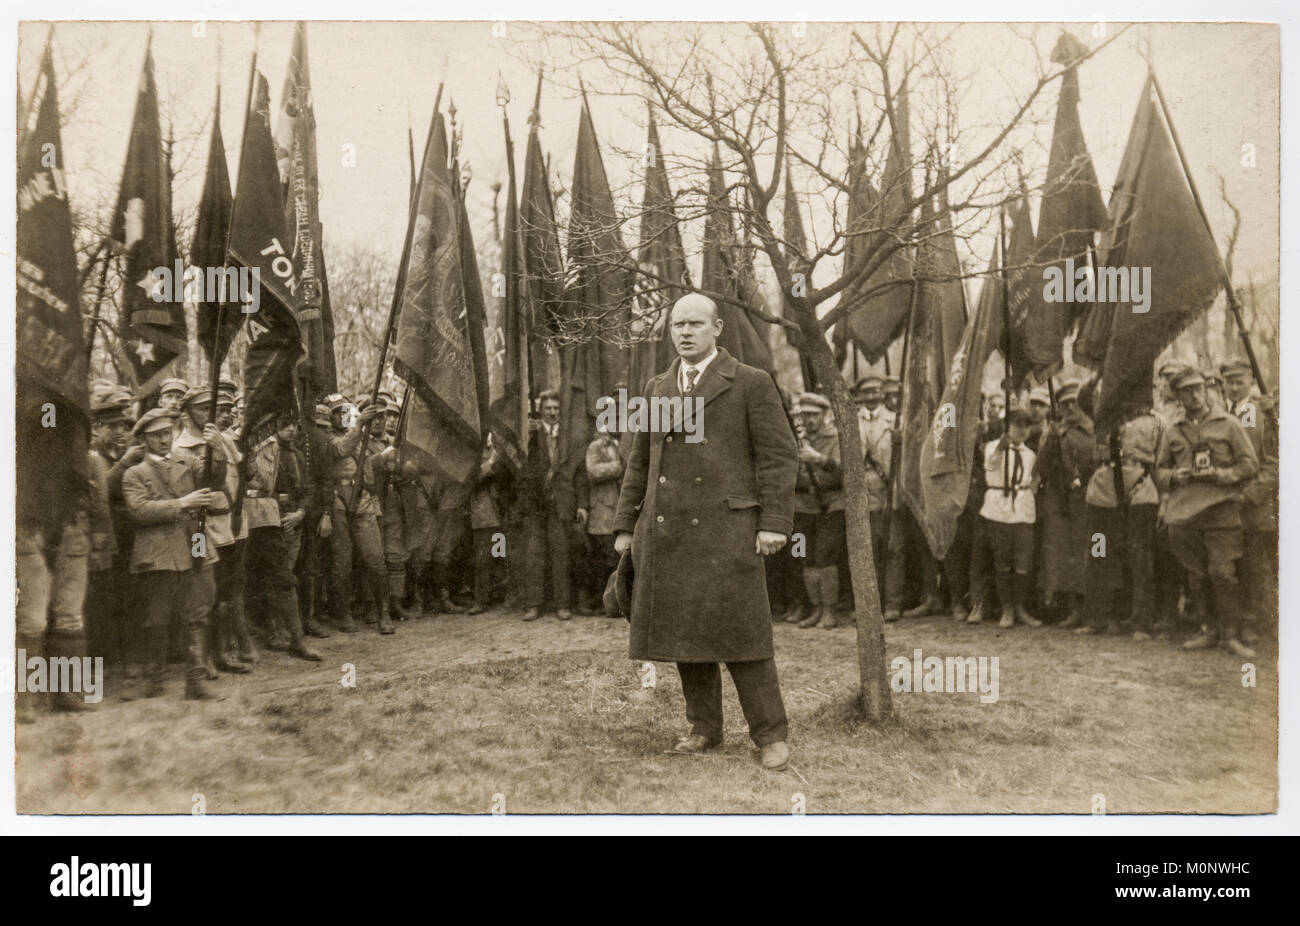 Ernst Thälmann,leader of the German Communist Party,KPD,speech in front of party members,historical photography - Stock Image